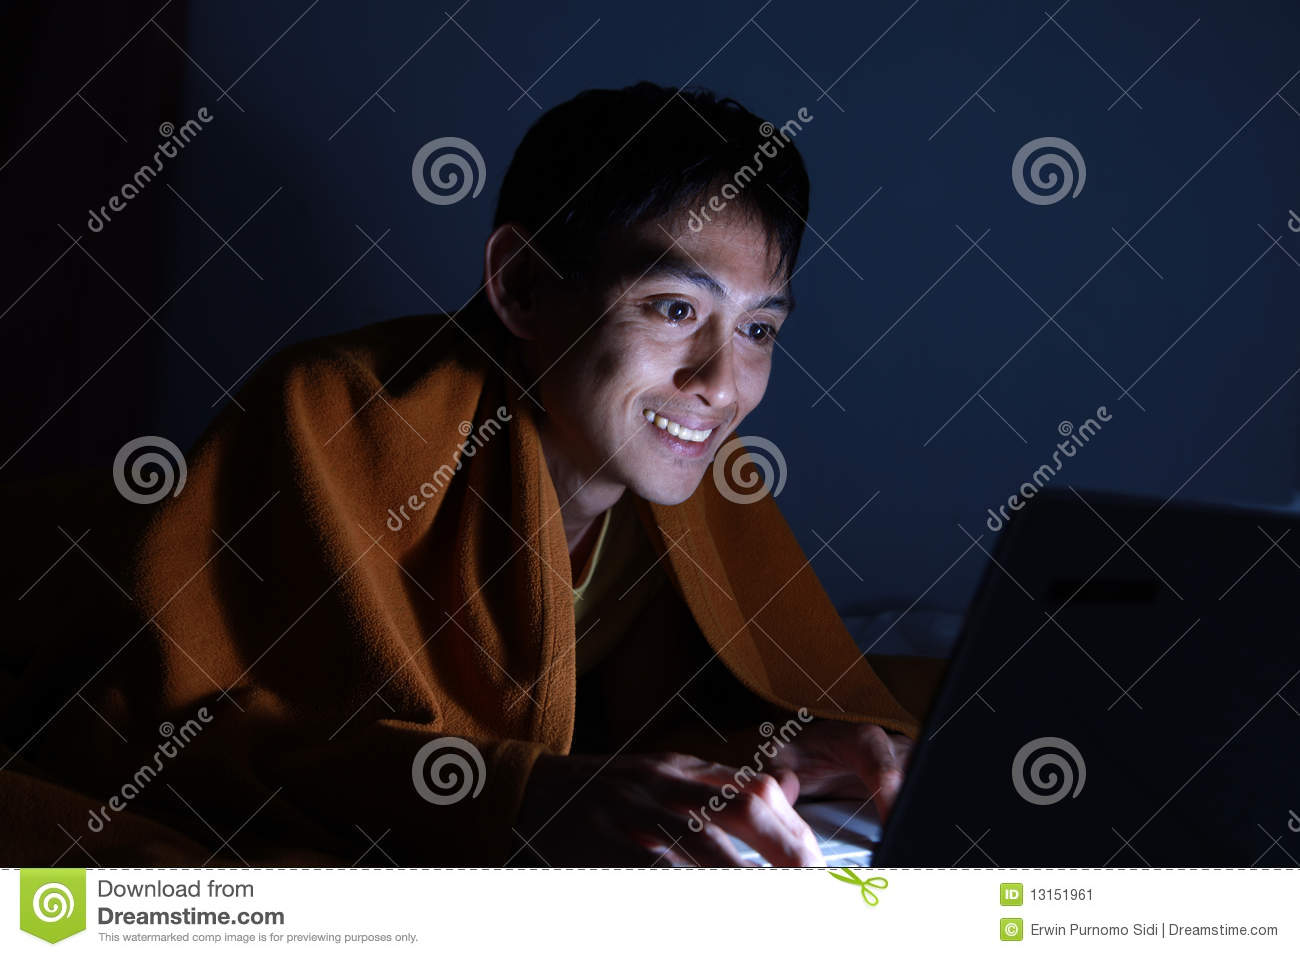 Using laptop on bed at night